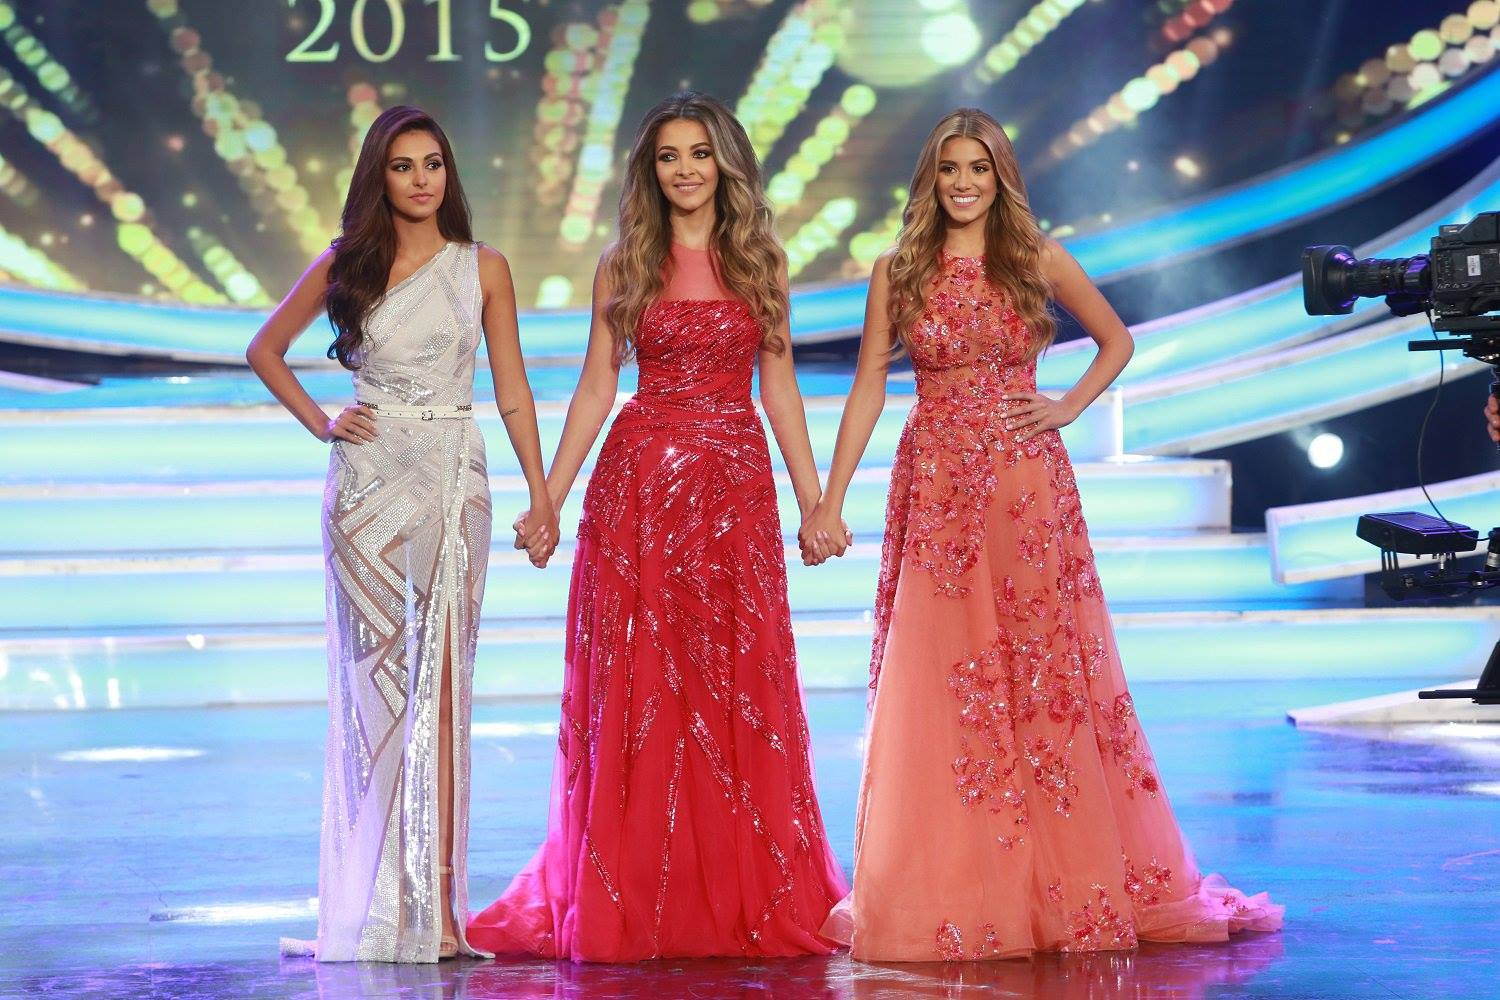 Valerie Abou Chacra crowned Miss Lebanon 2015-4